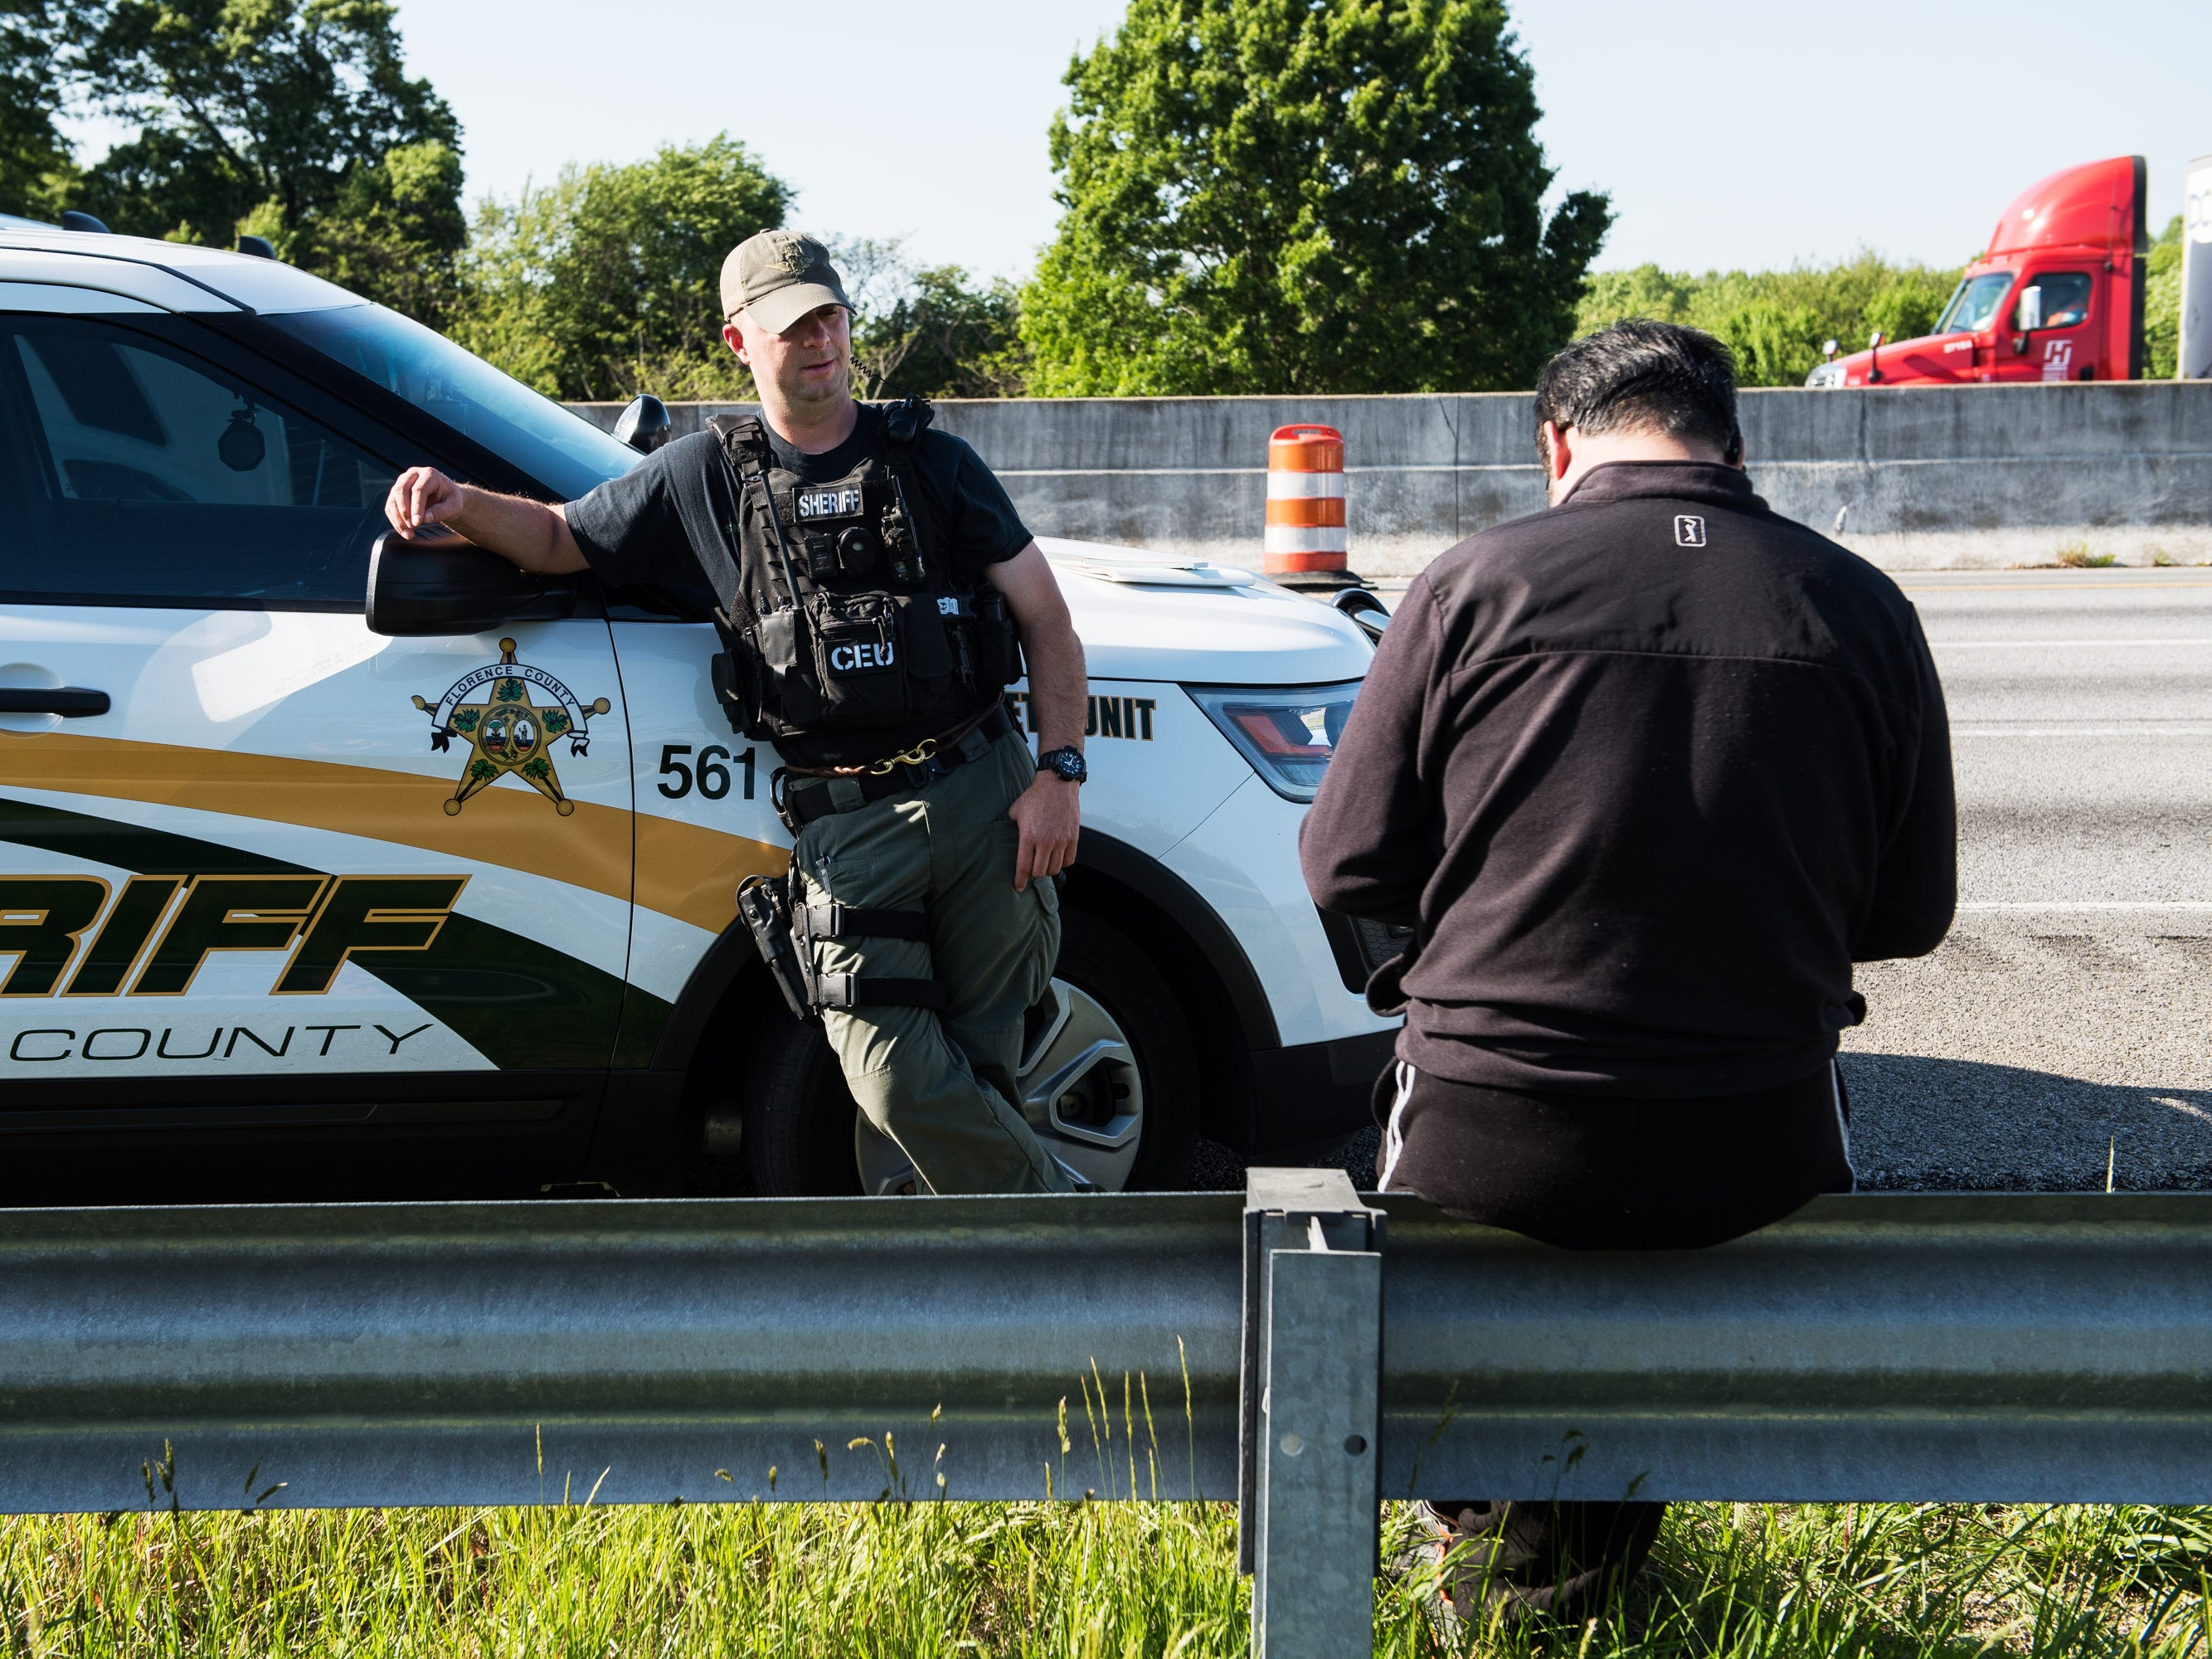 """A Florence County Sheriff's Office deputy stands next to a man who was pulled over as part of Operation Rolling Thunder on Interstate 85 in Spartanburg County.  The whole thing is """"kindalike fishing,"""" Spartanburg sheriff'sCpl. Danny Blackwell said."""